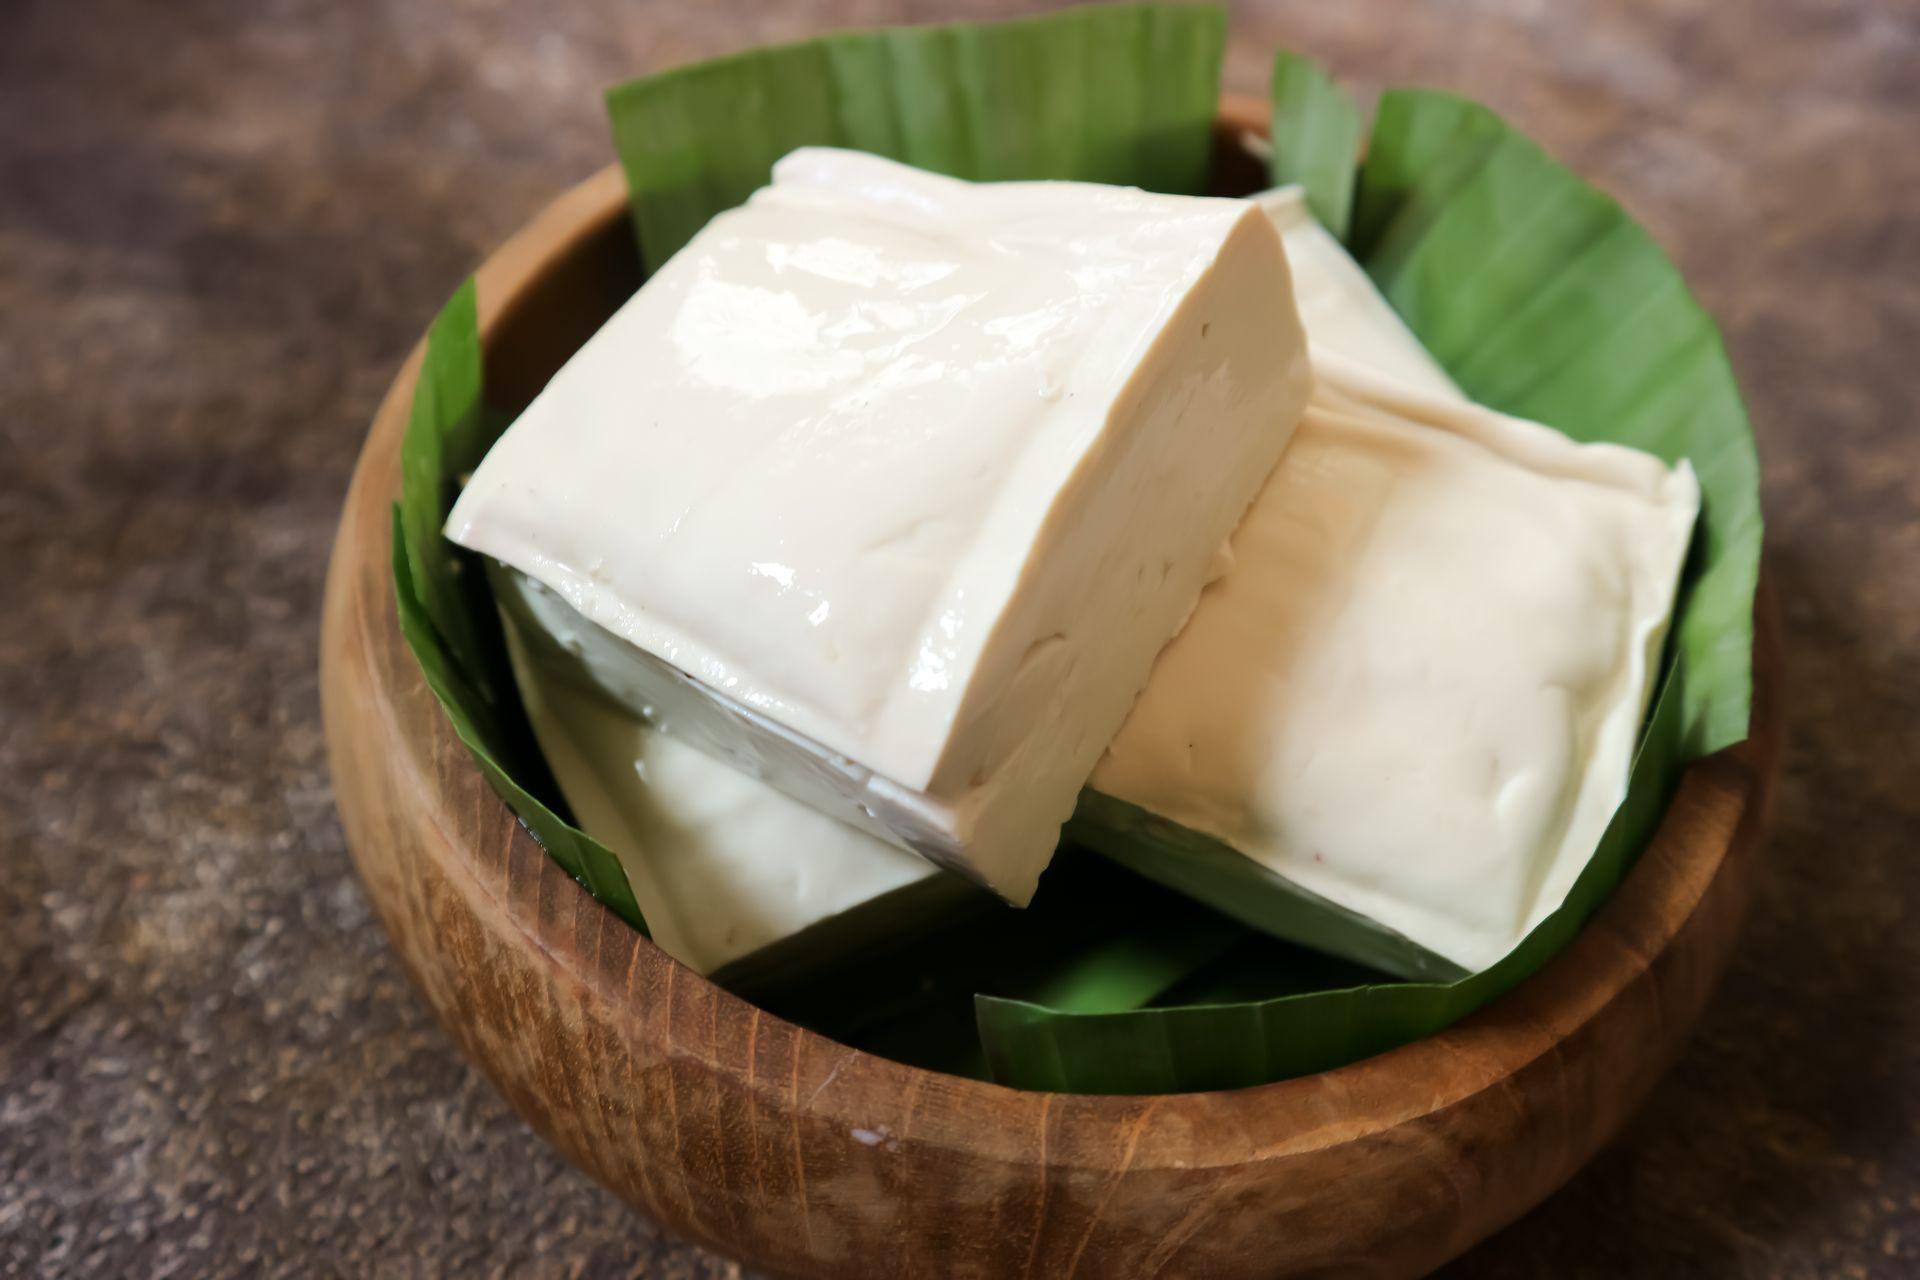 Tofu is a food made from coagulated soybean seed presses